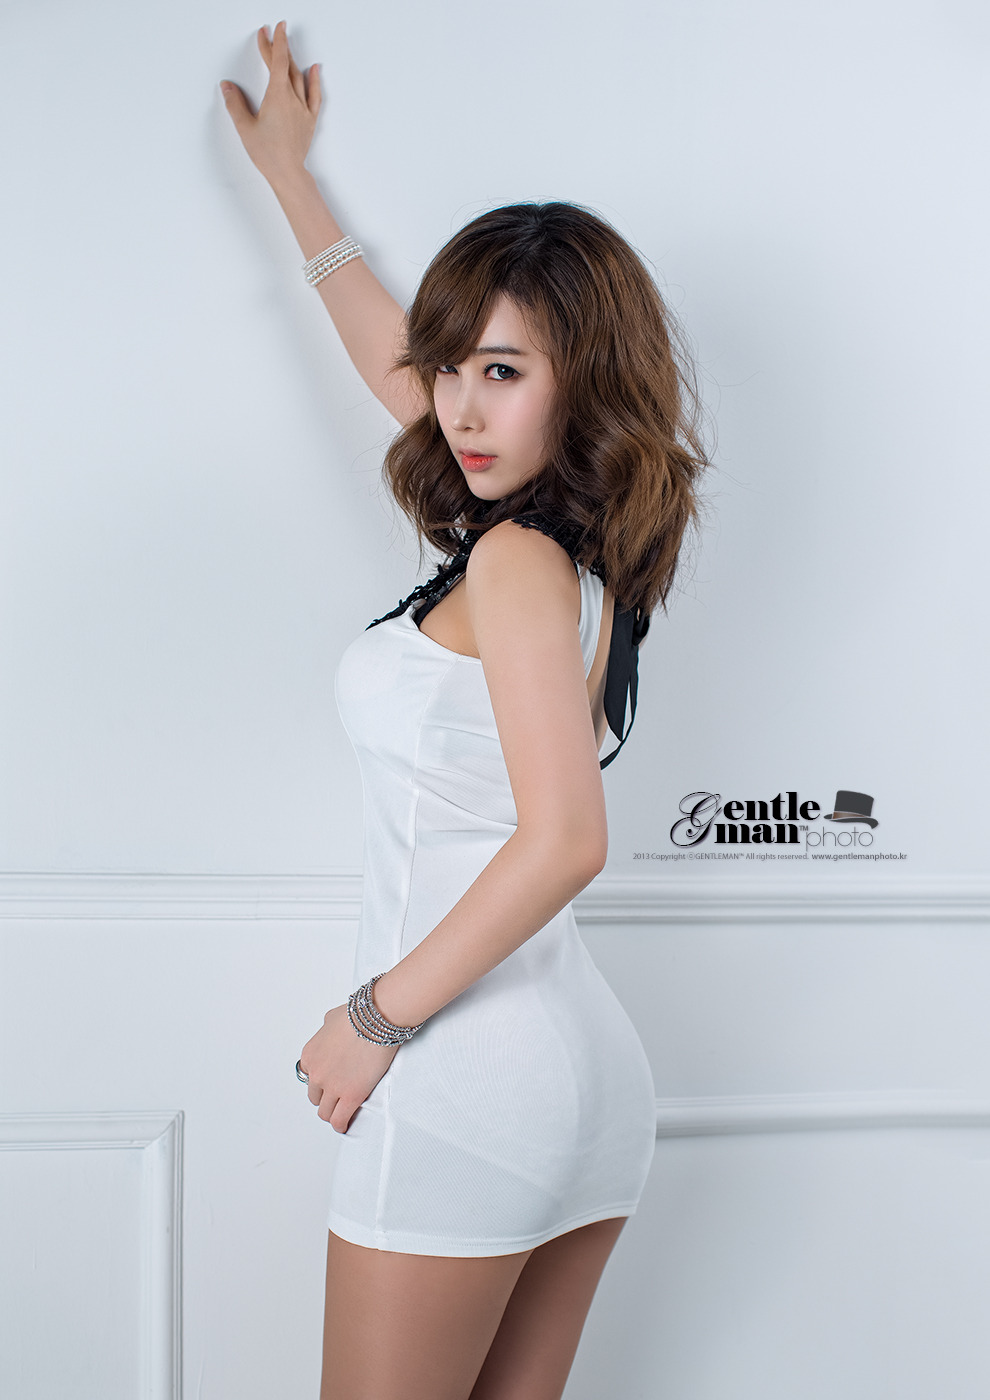 xxx nude girls: Im Min Young in White